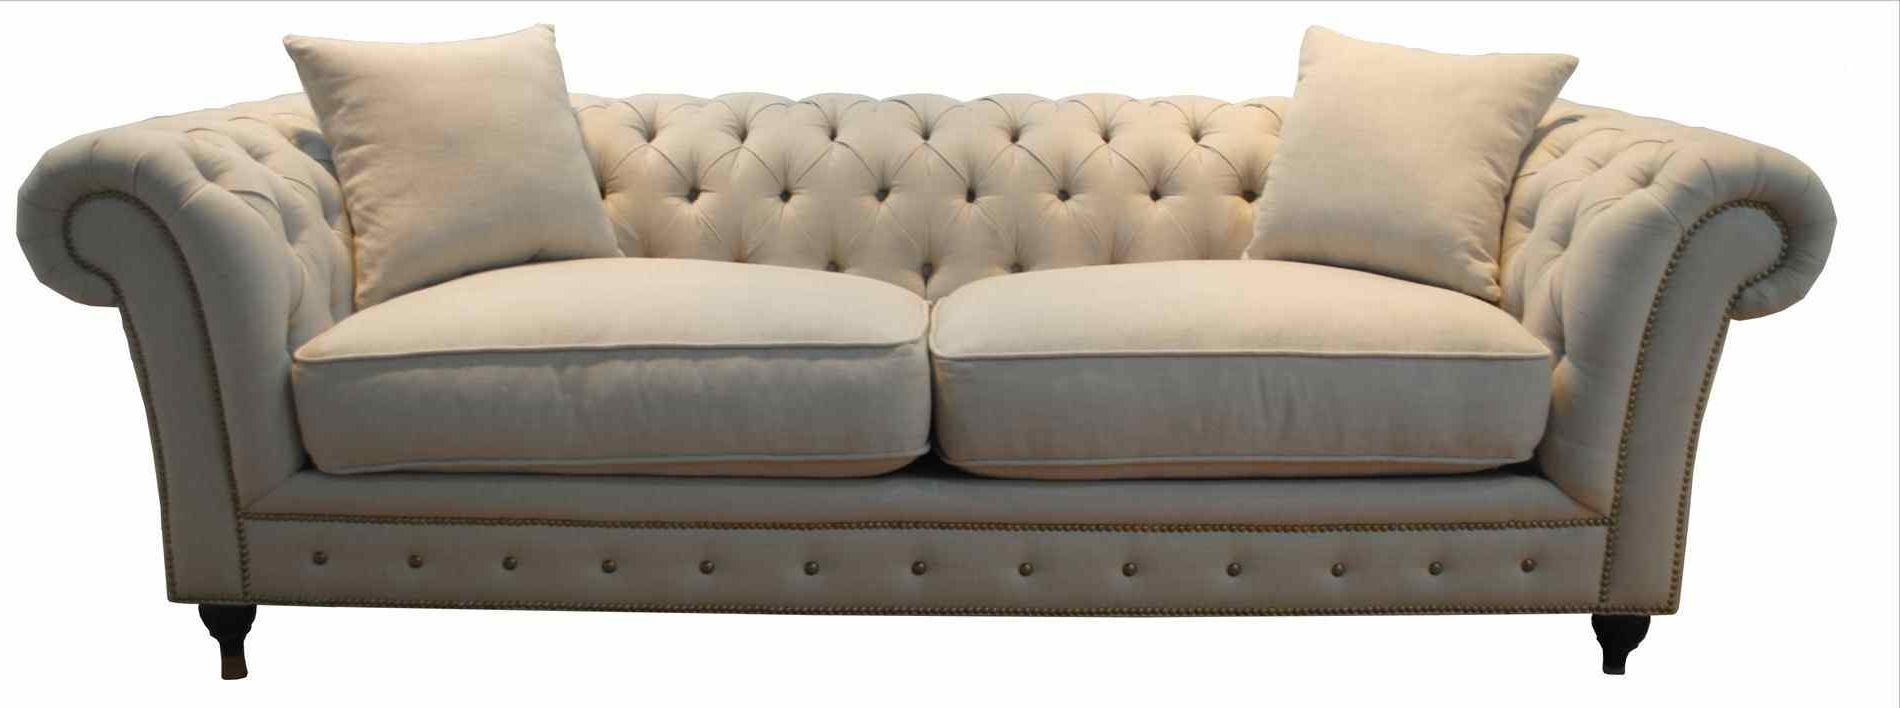 Sofa : Room French Sofa Set Furniture Style Various Fabric Color Pertaining To Best And Newest French Style Sofas (View 13 of 20)